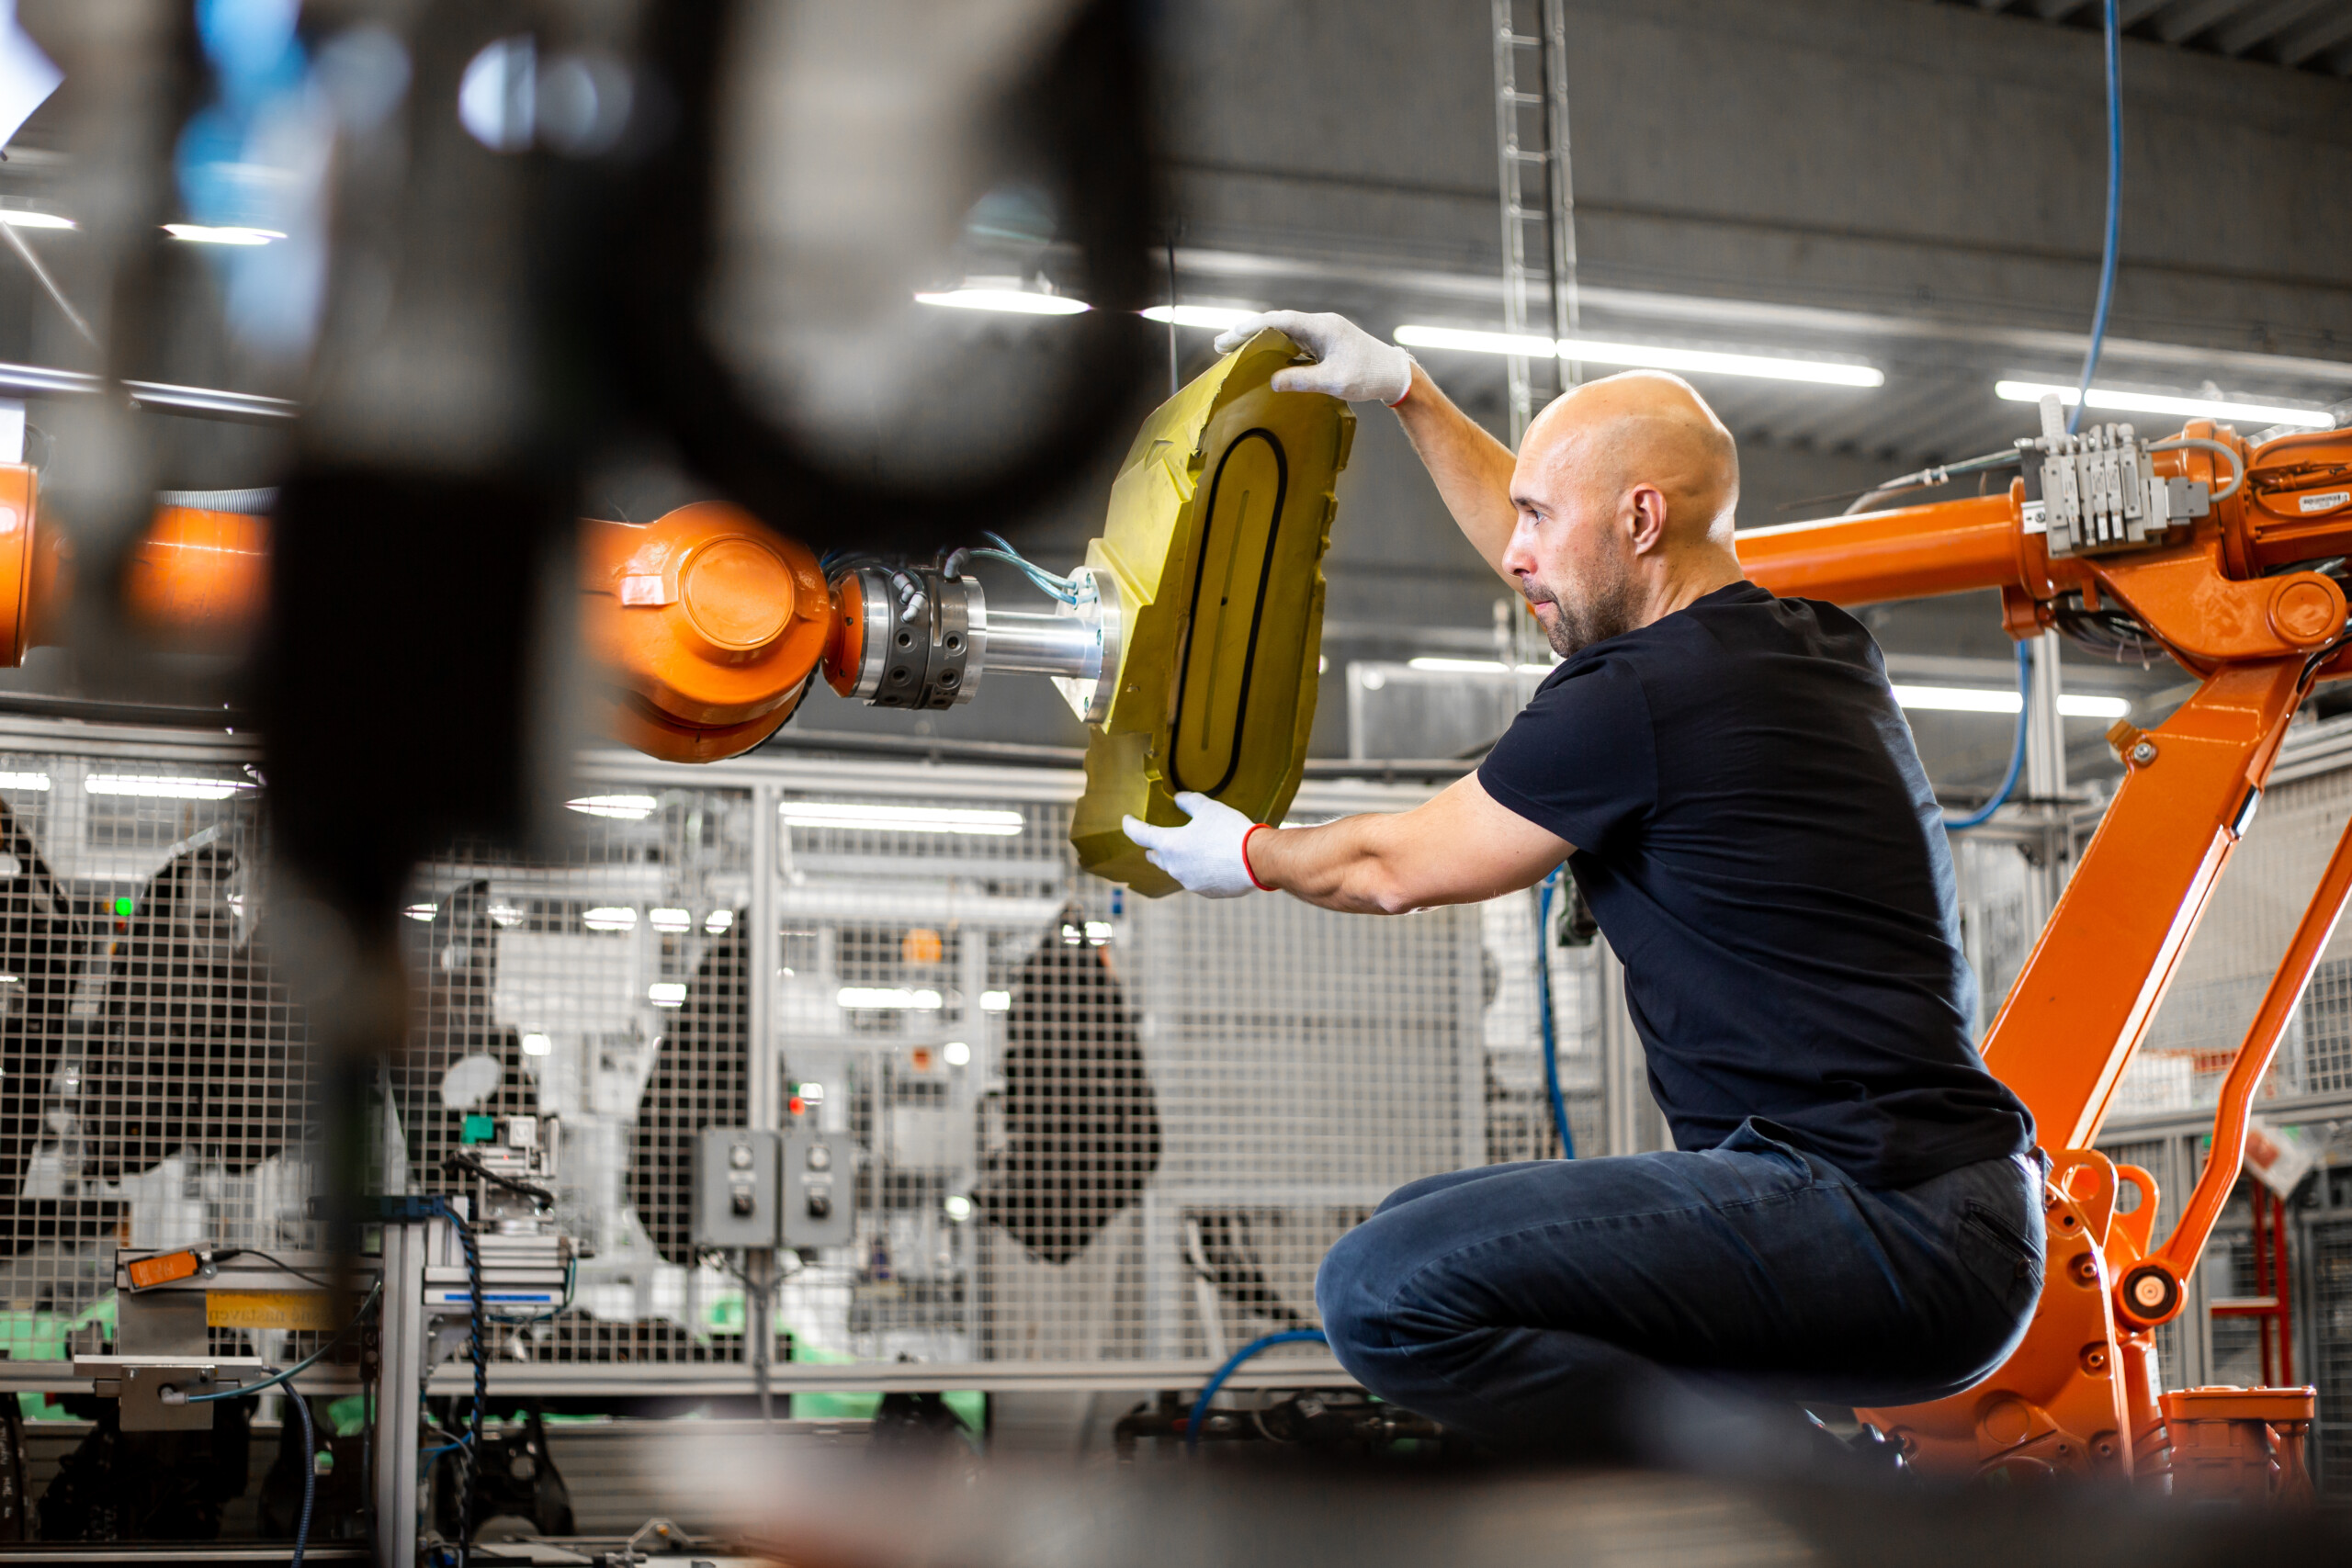 Engineer repairing an automatic robot amrs in automotive, smart factory